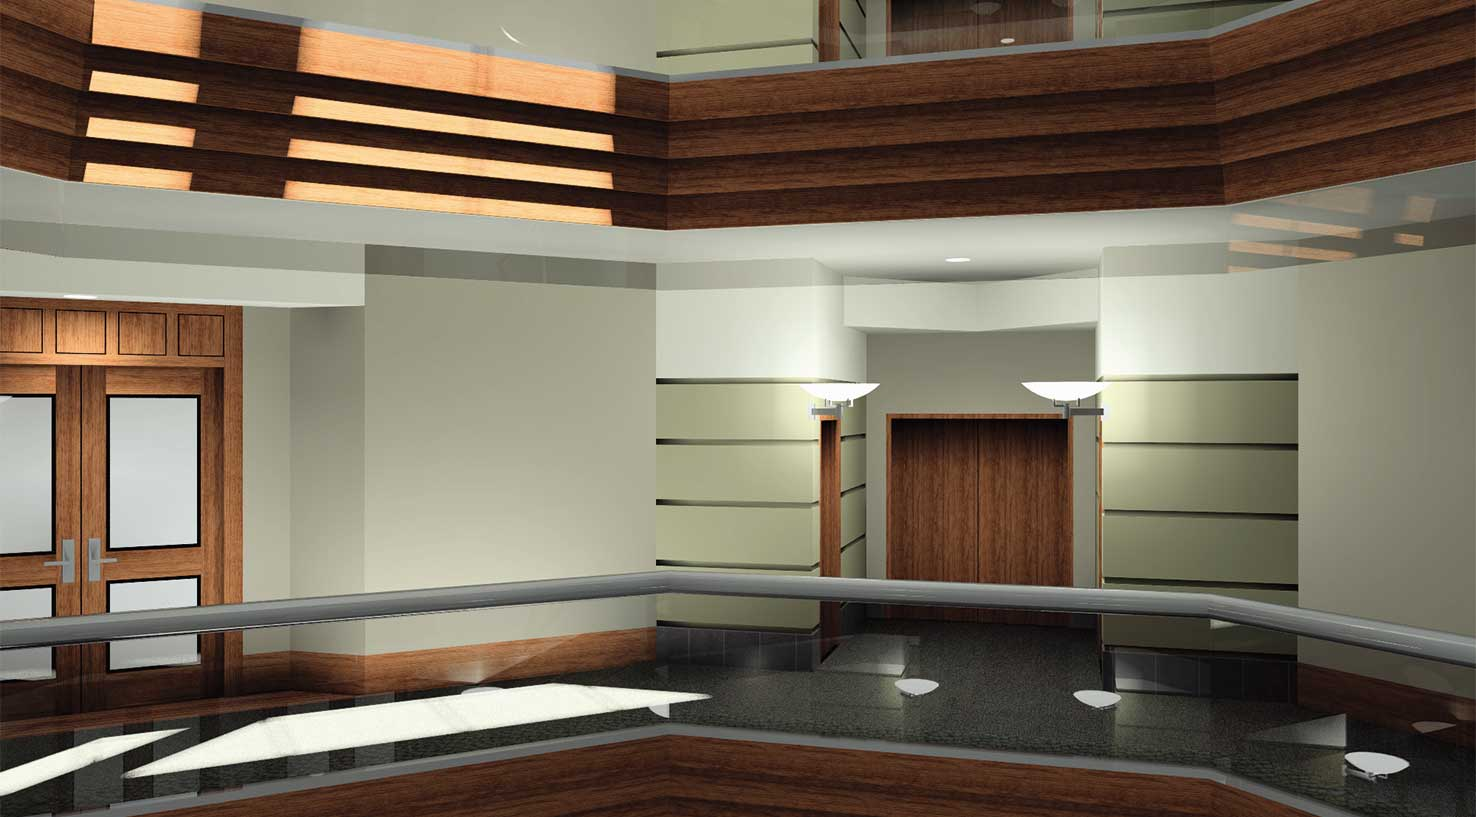 architectural rendering of a LEED certified commercial office interior